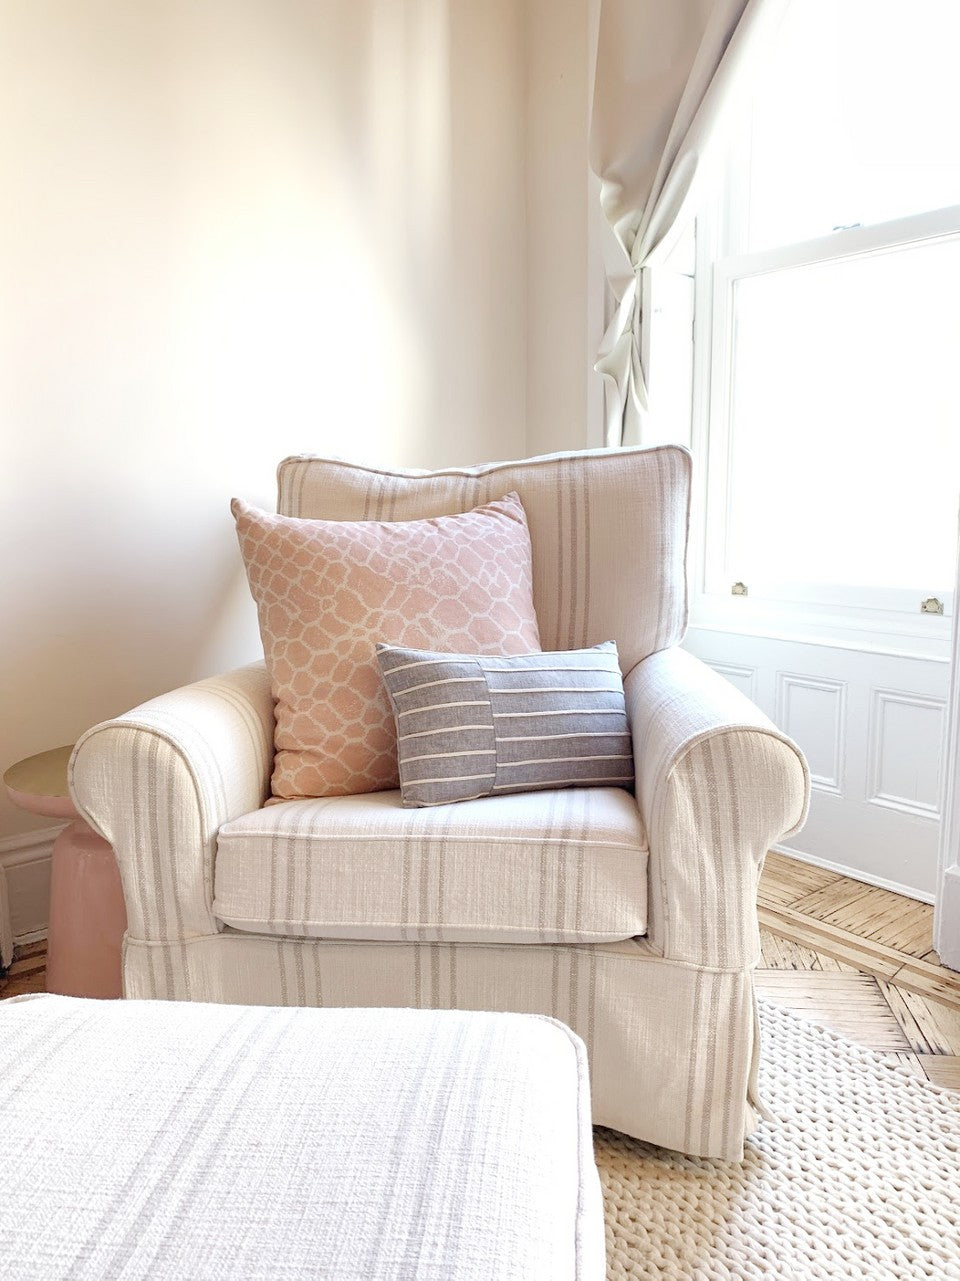 white and grey striped arm chair with large pink pillow and grey lumbar pillow on top in front of white wall